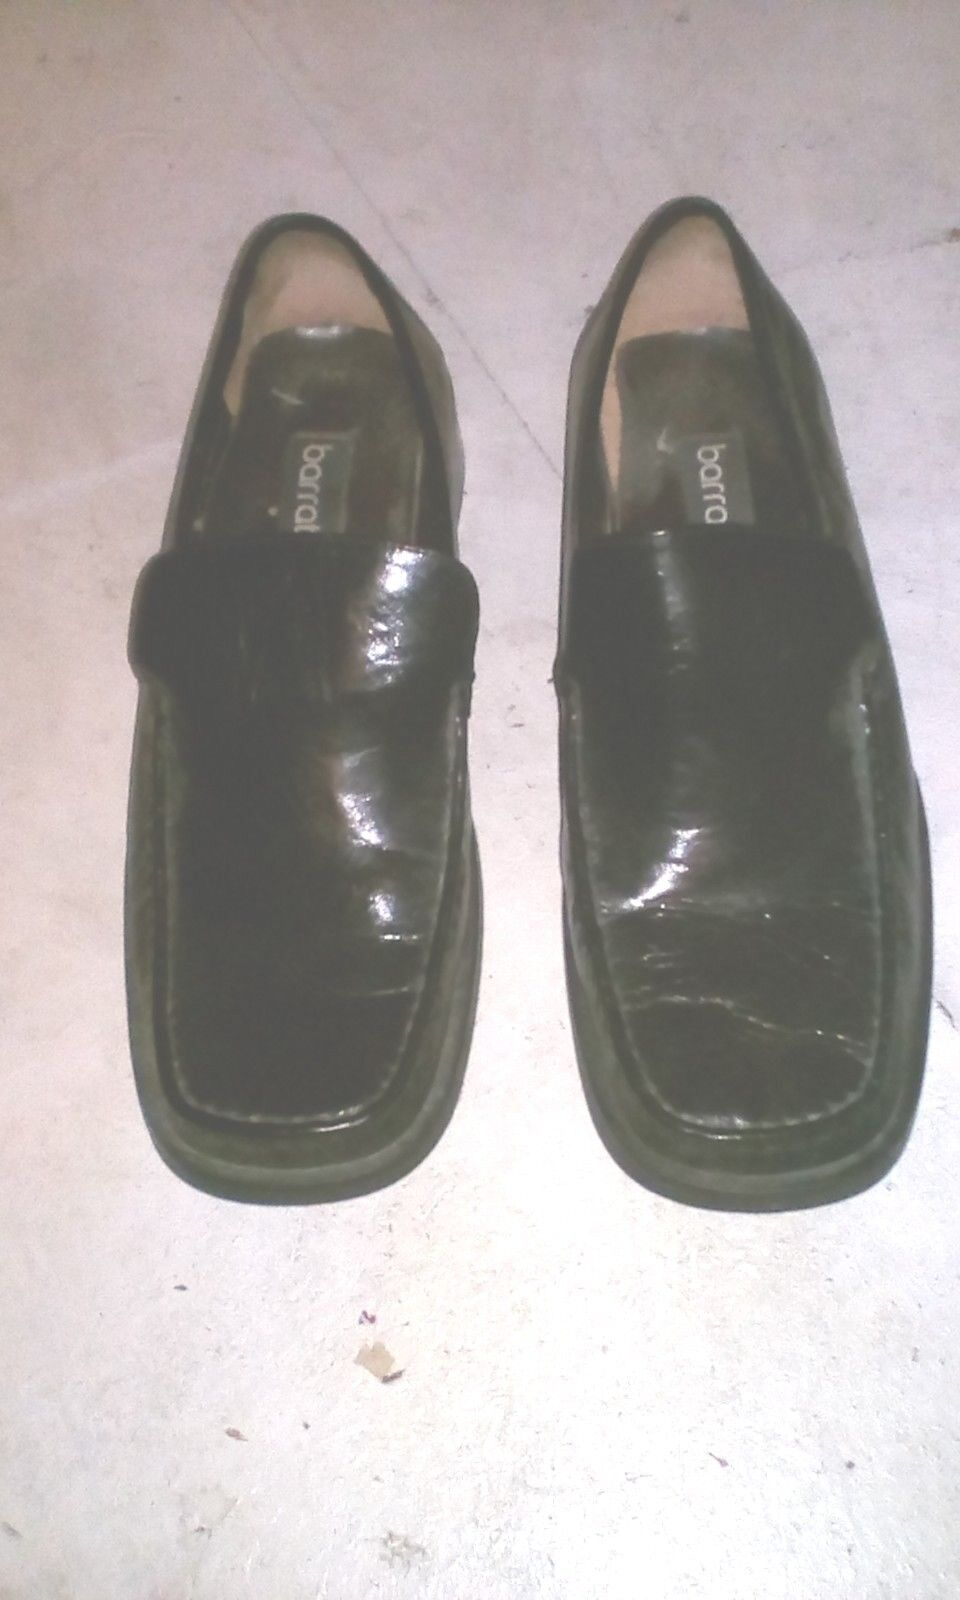 Mens Barratts leather loafers size 10 black